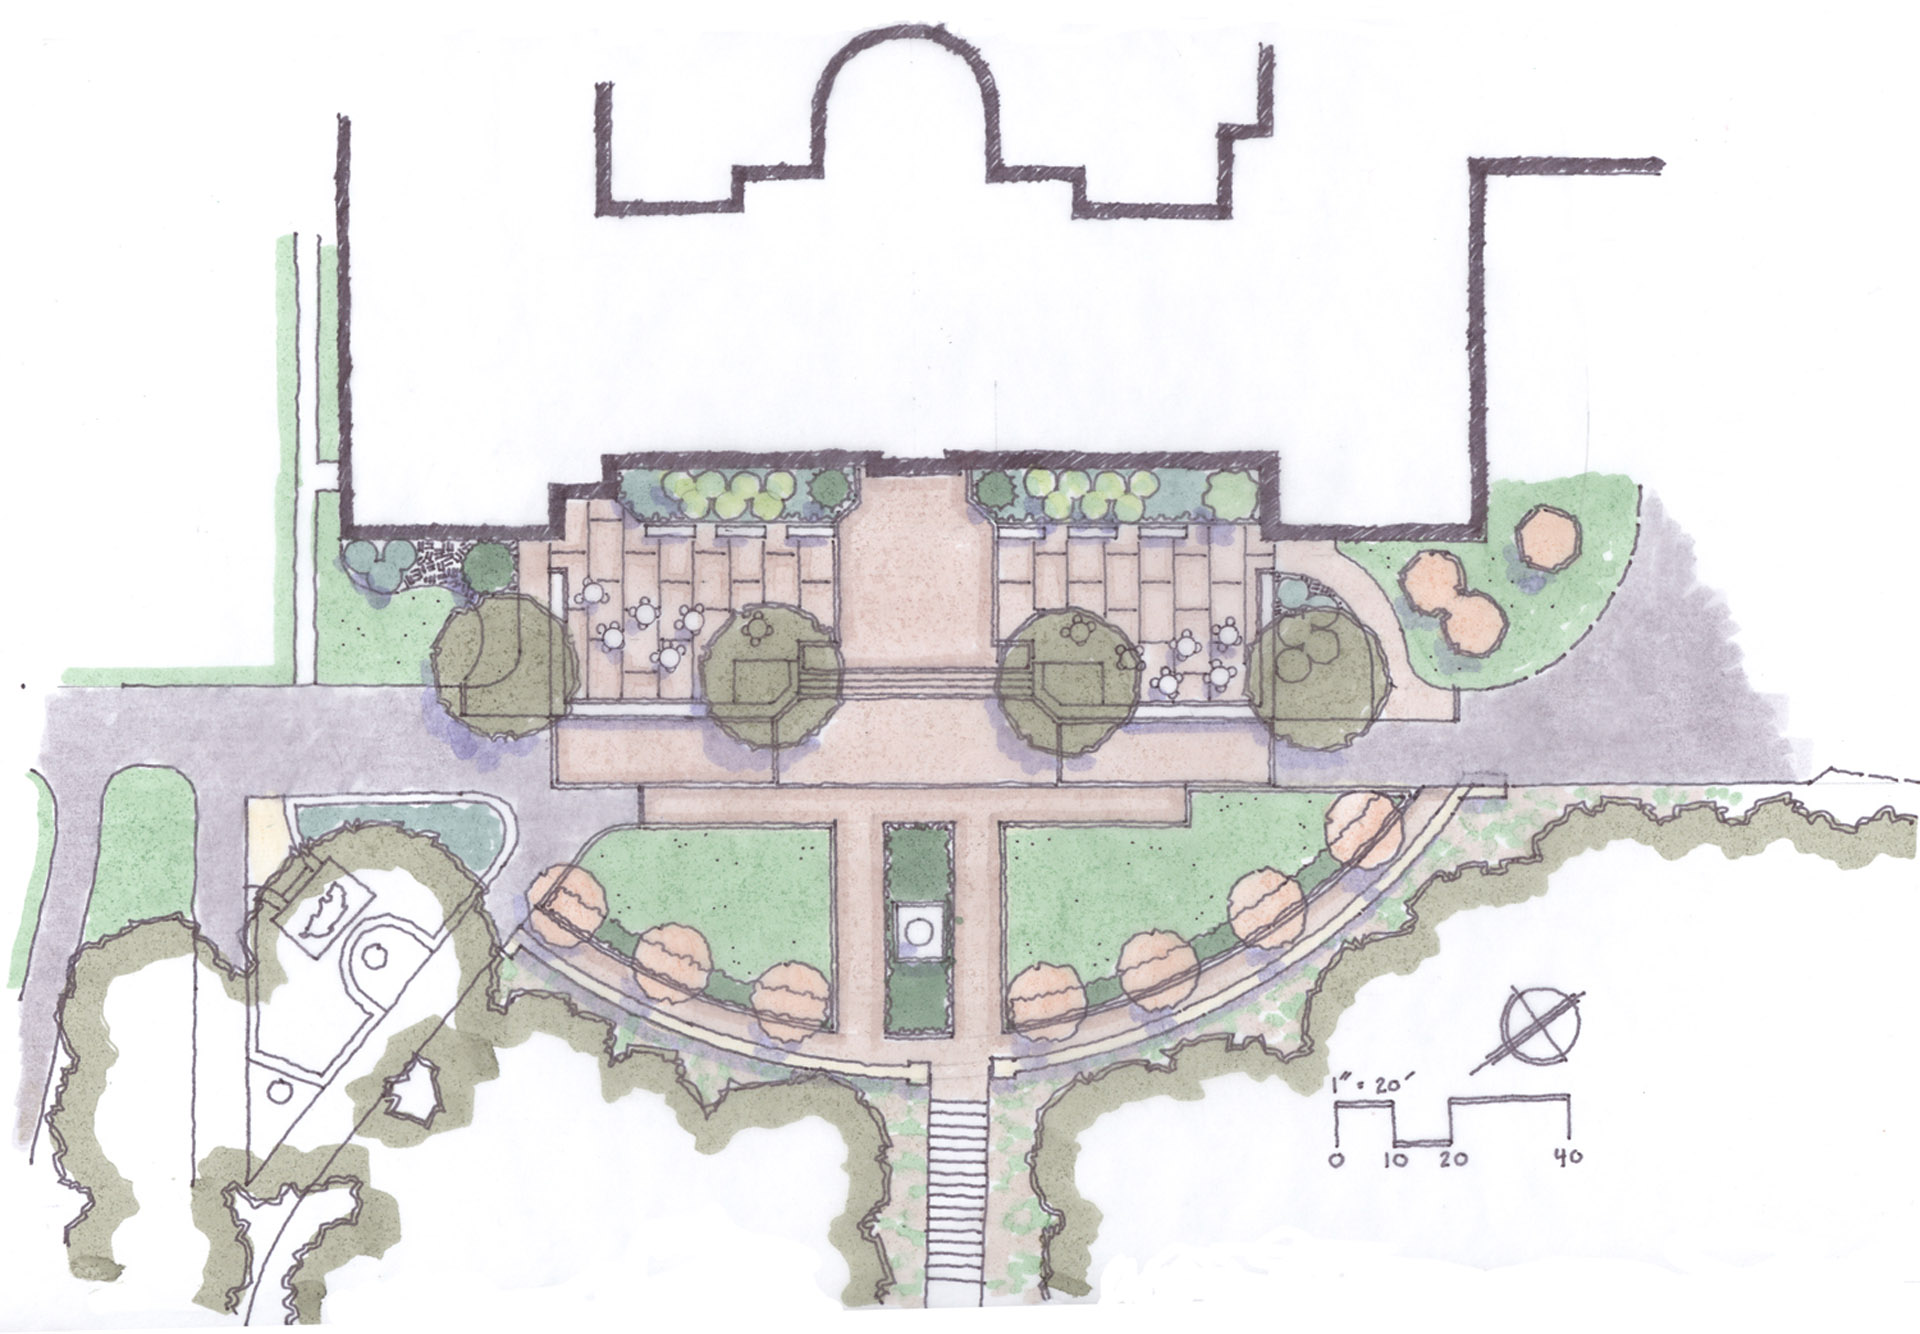 Penn State University Abington Campus Option D Plan